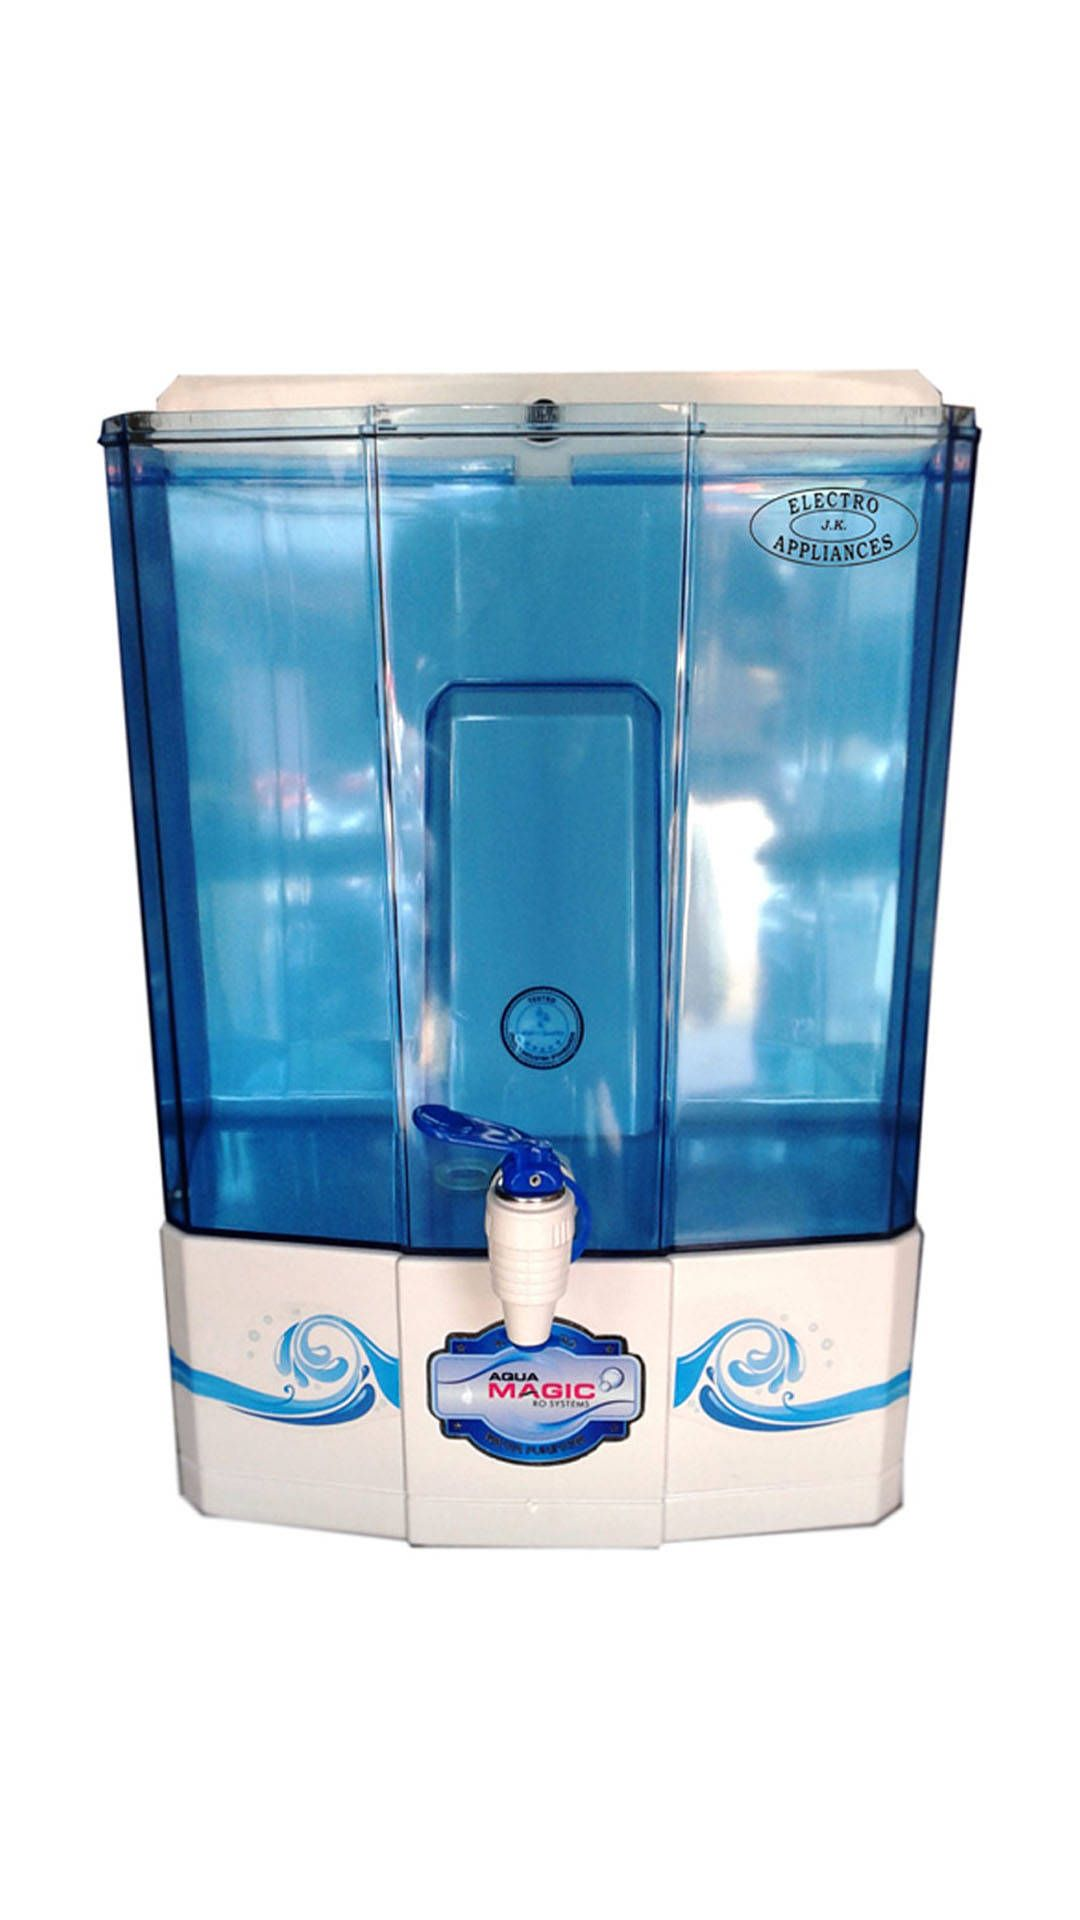 Specifications of Aquafresh Pearl Electroapps 10 L RO Electrical